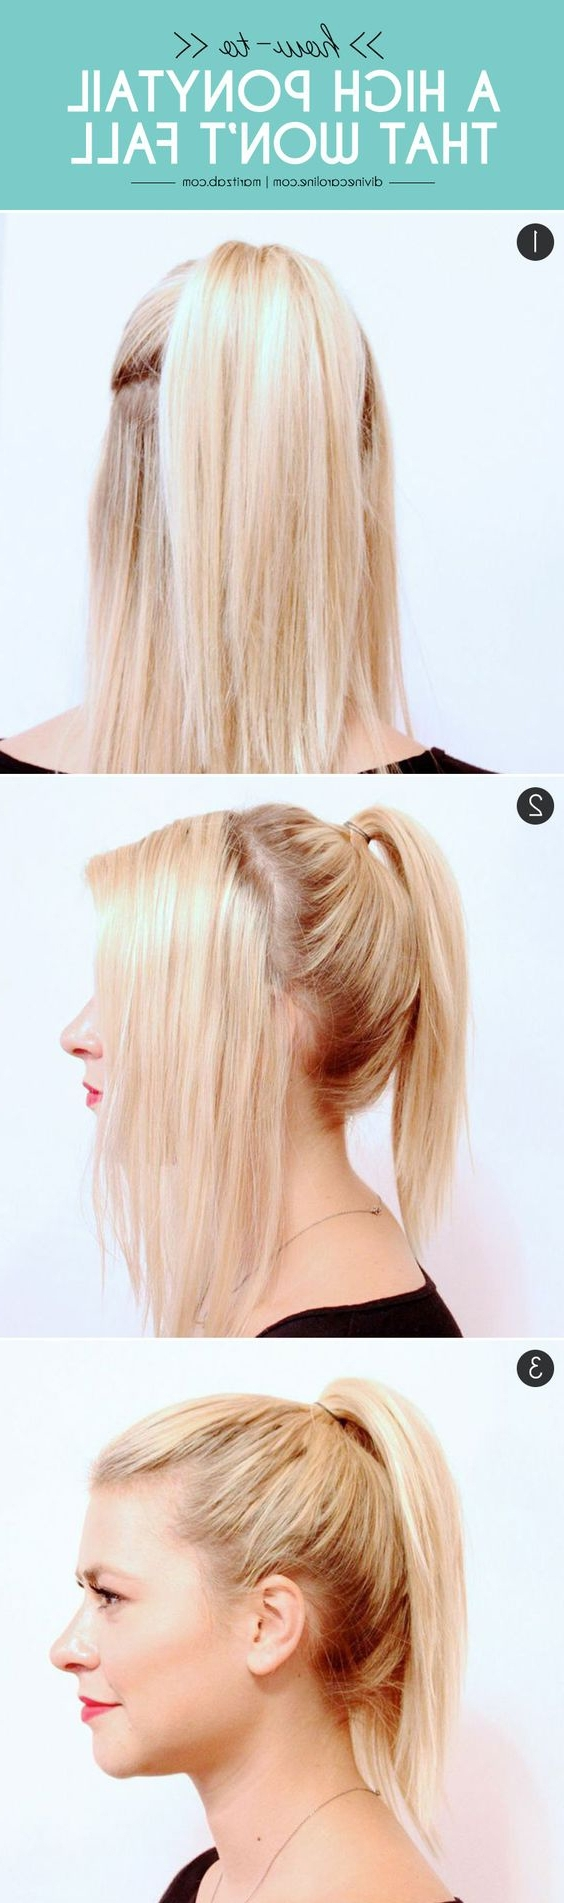 18 High Ponytail Hairstyles You Need To Try For Spring 2017 – Gurl For Popular Futuristic And Flirty Ponytail Hairstyles (View 3 of 20)